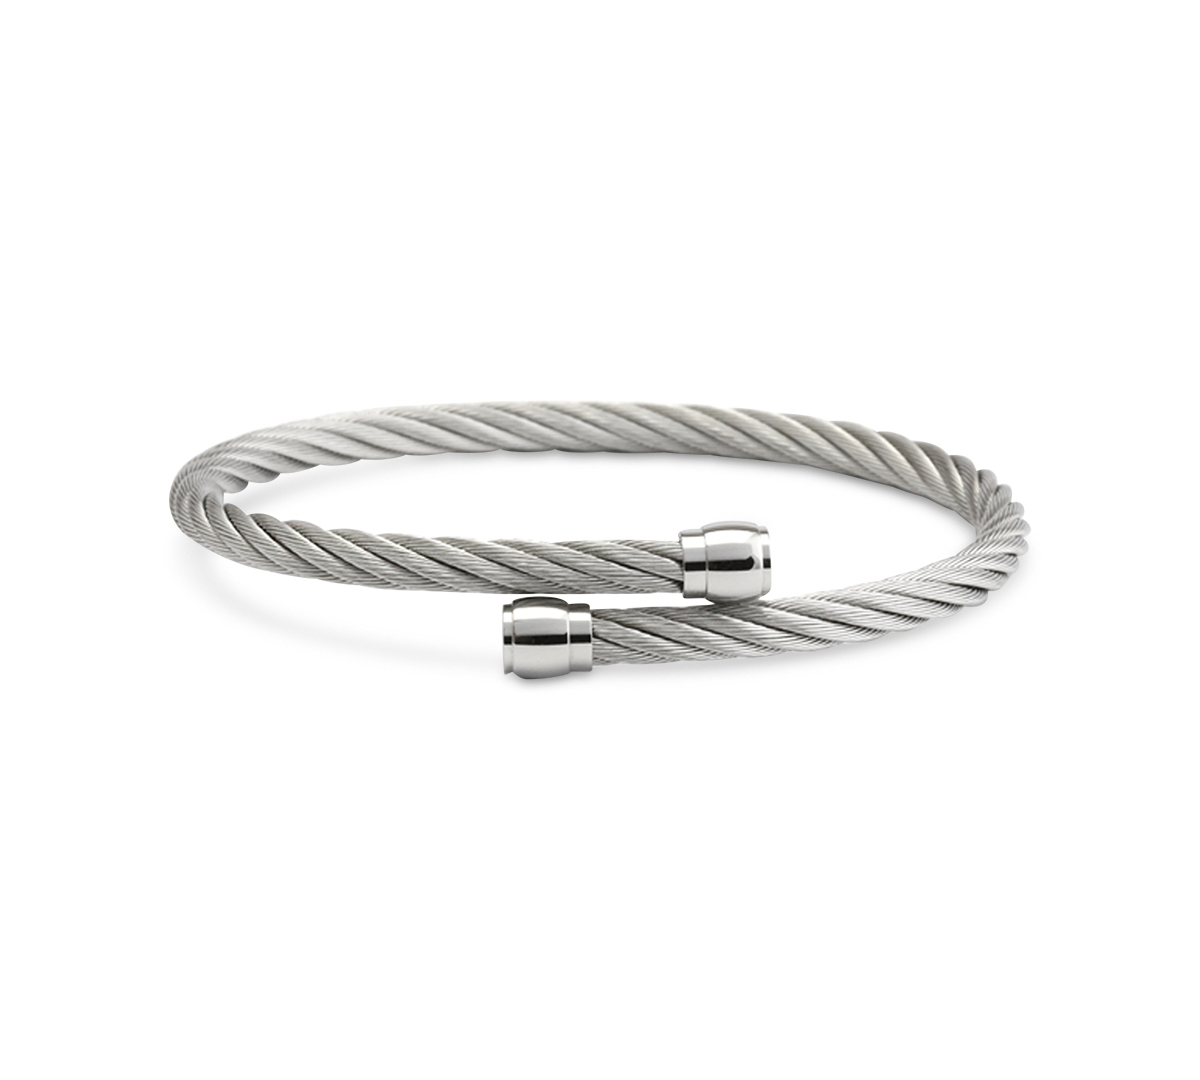 Charriol Cable Bypass Bangle Bracelet in Stainless Steel